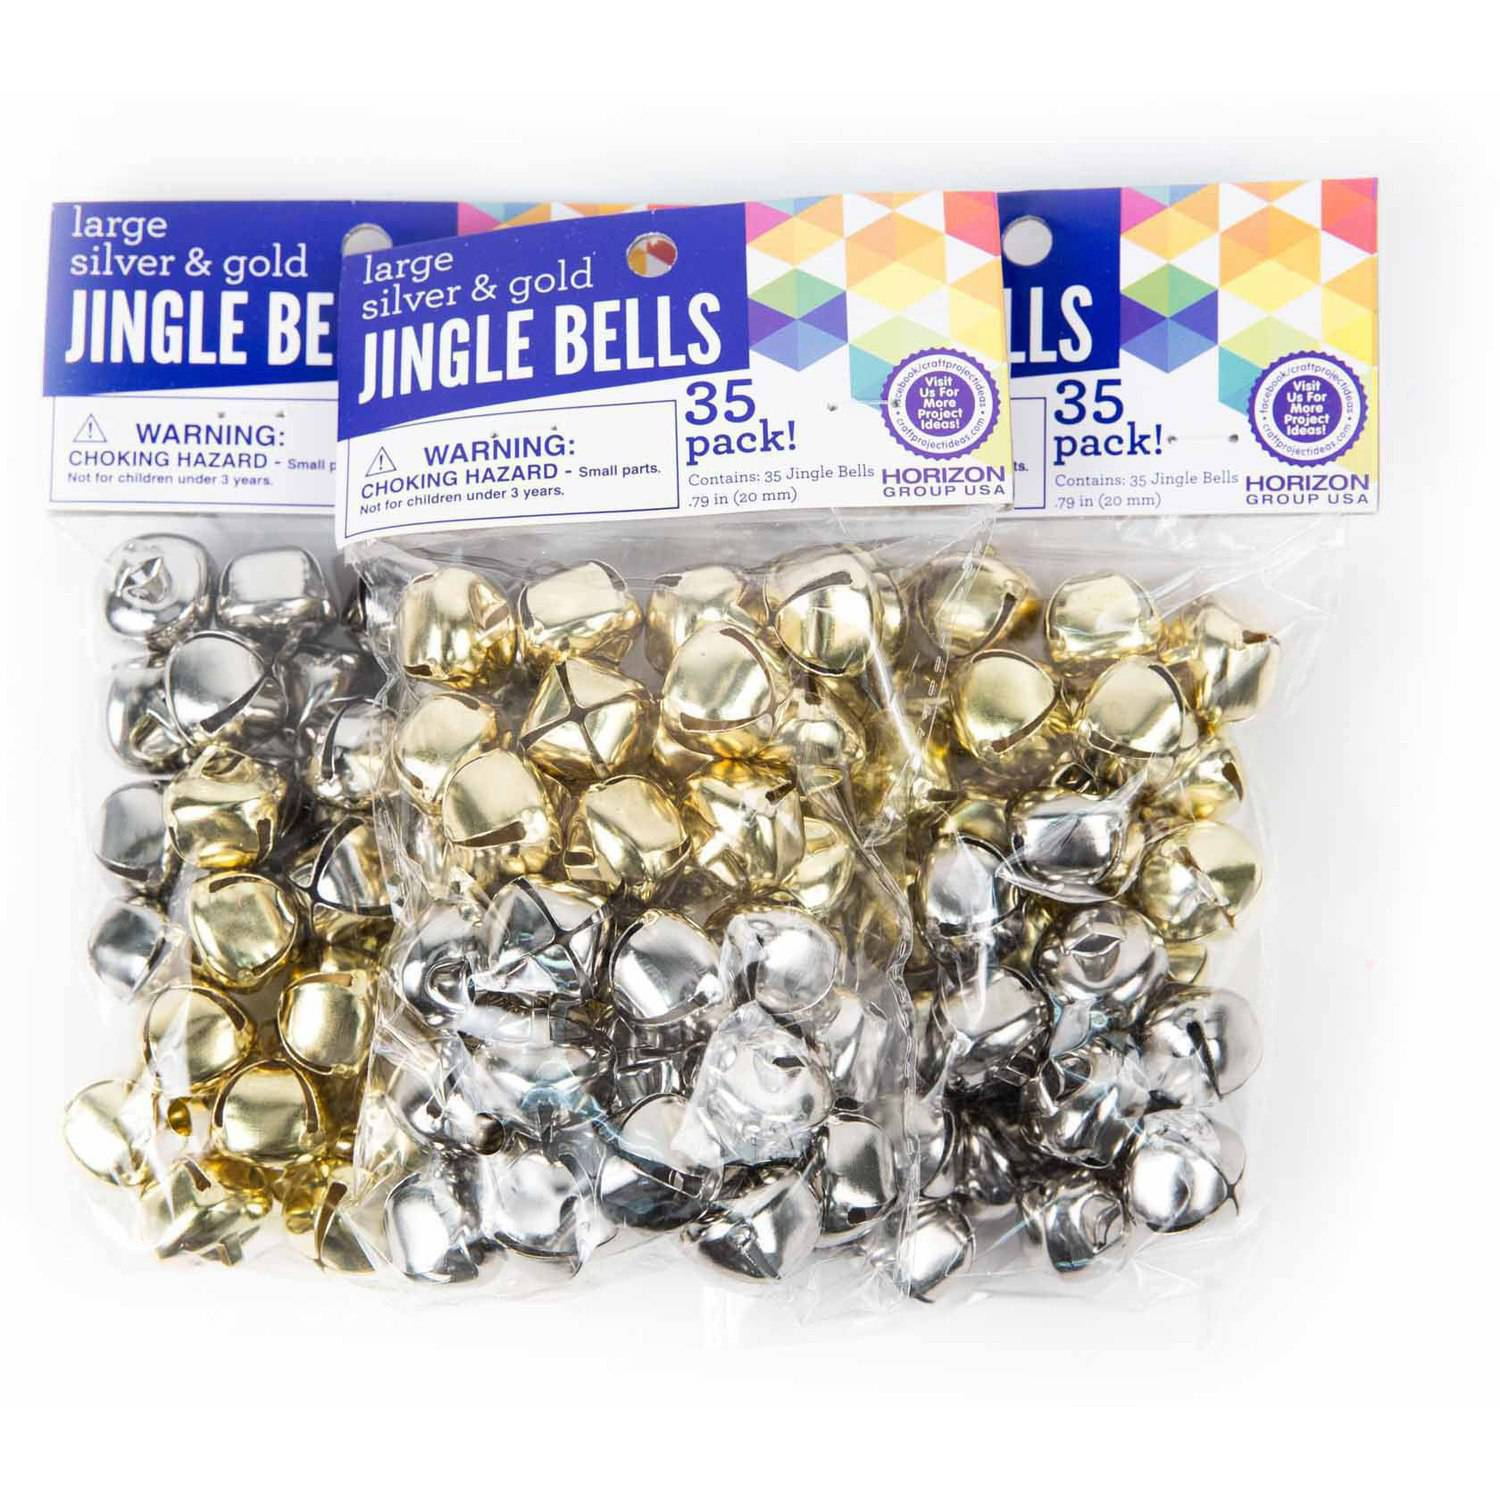 Gold & Silver Jingle Bells 20mm, 3PKS - 35ct. Each by Horizon Group USA